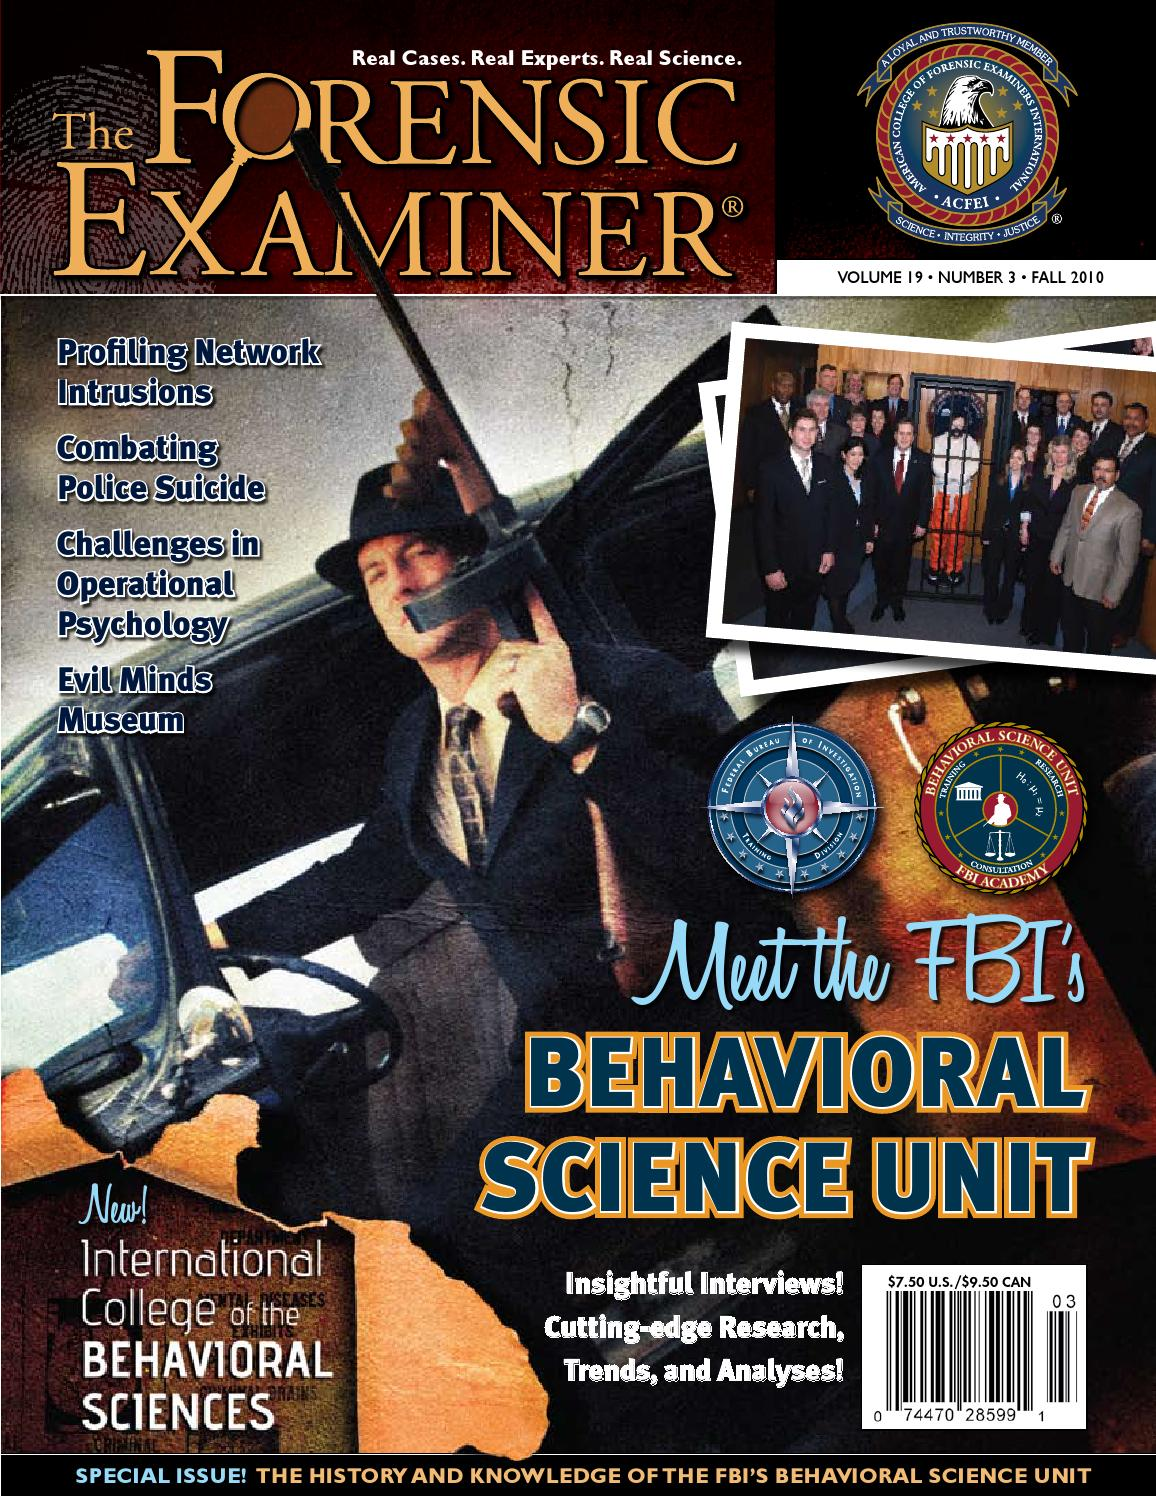 The Forensic Examiner Fall 2010 By Cnta Inc Issuu